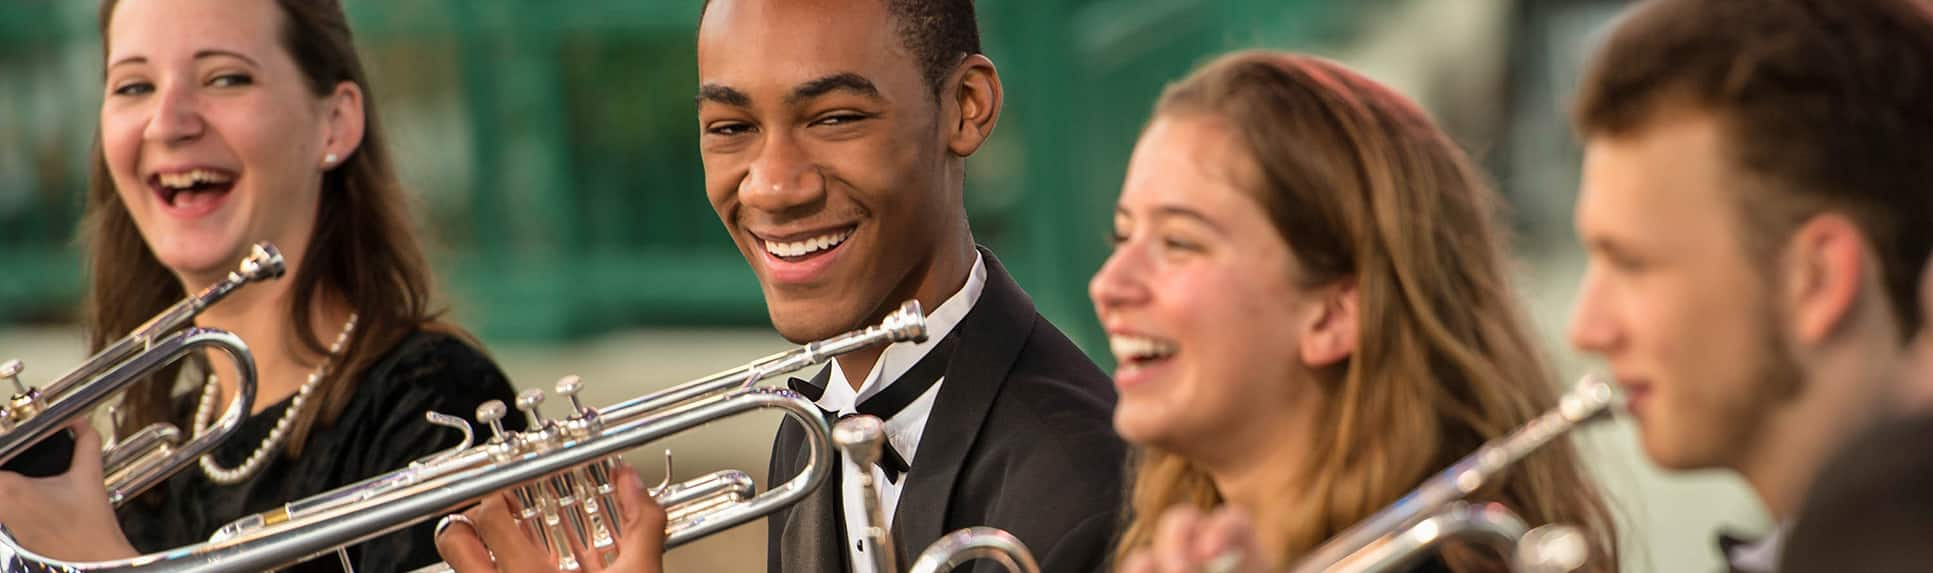 Two girls and two boys in the trumpet section of a school band smile broadly during a concert